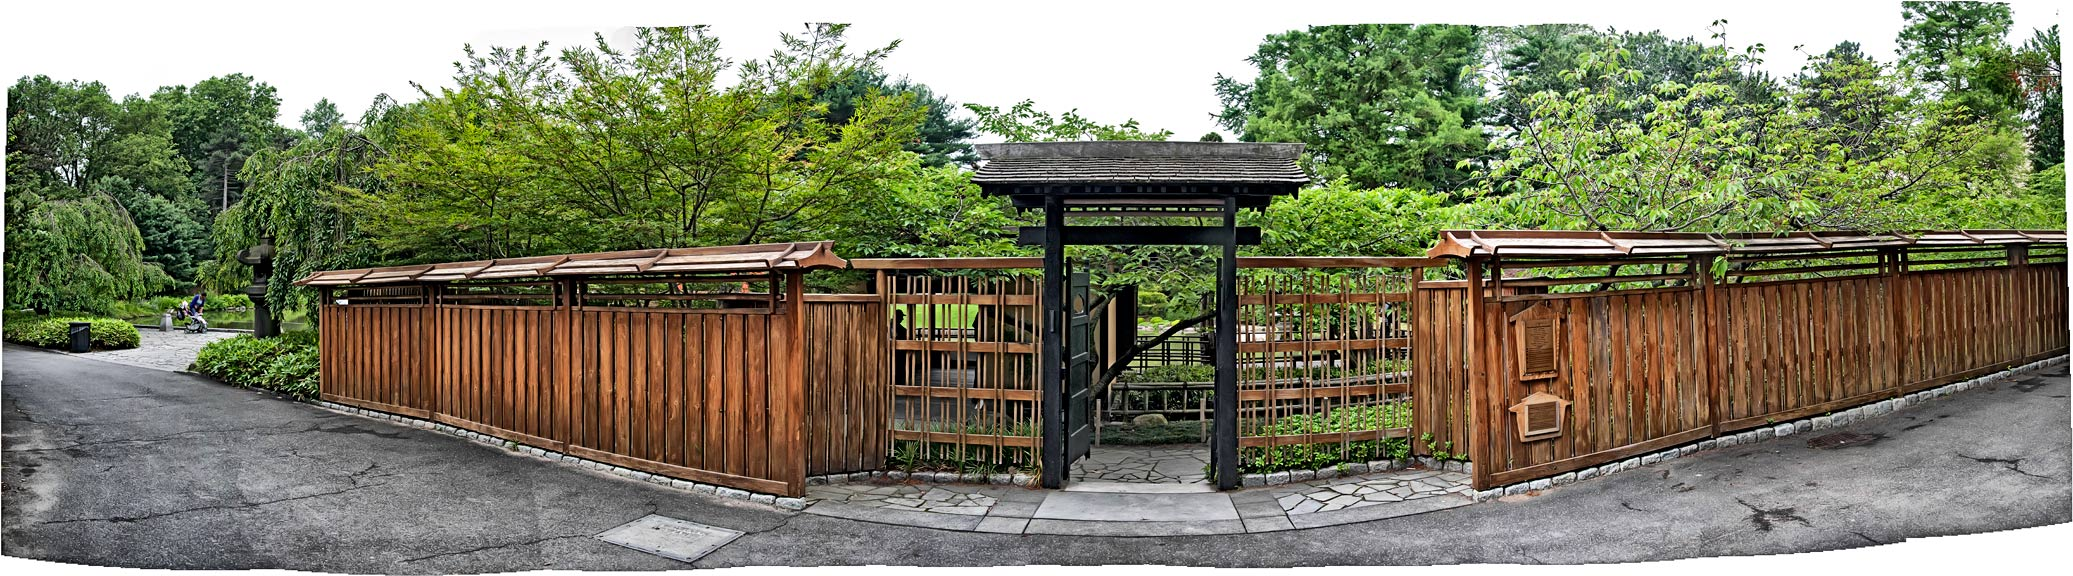 Delicieux Japanese Garden Gate Pano